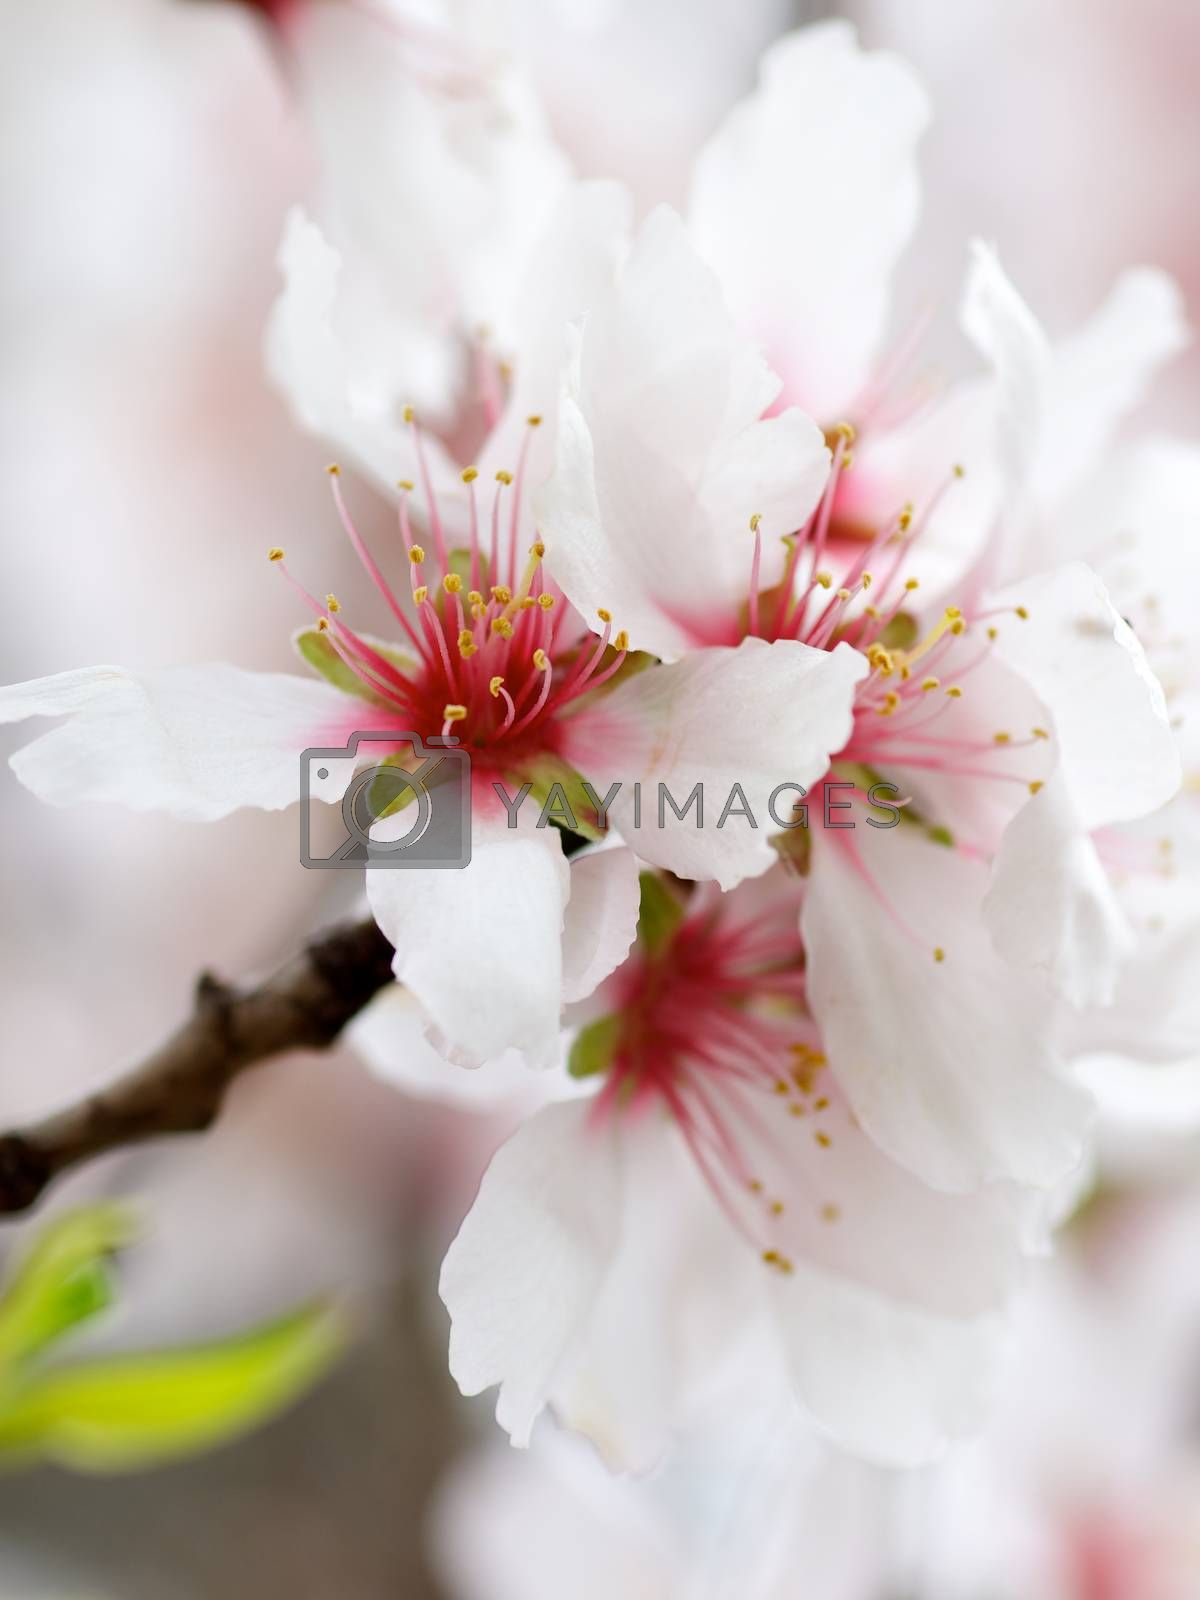 Beauty White and Red Cherry Blossoms on Blurred Cherry Flowers background. Focus on Pistil with Pollen